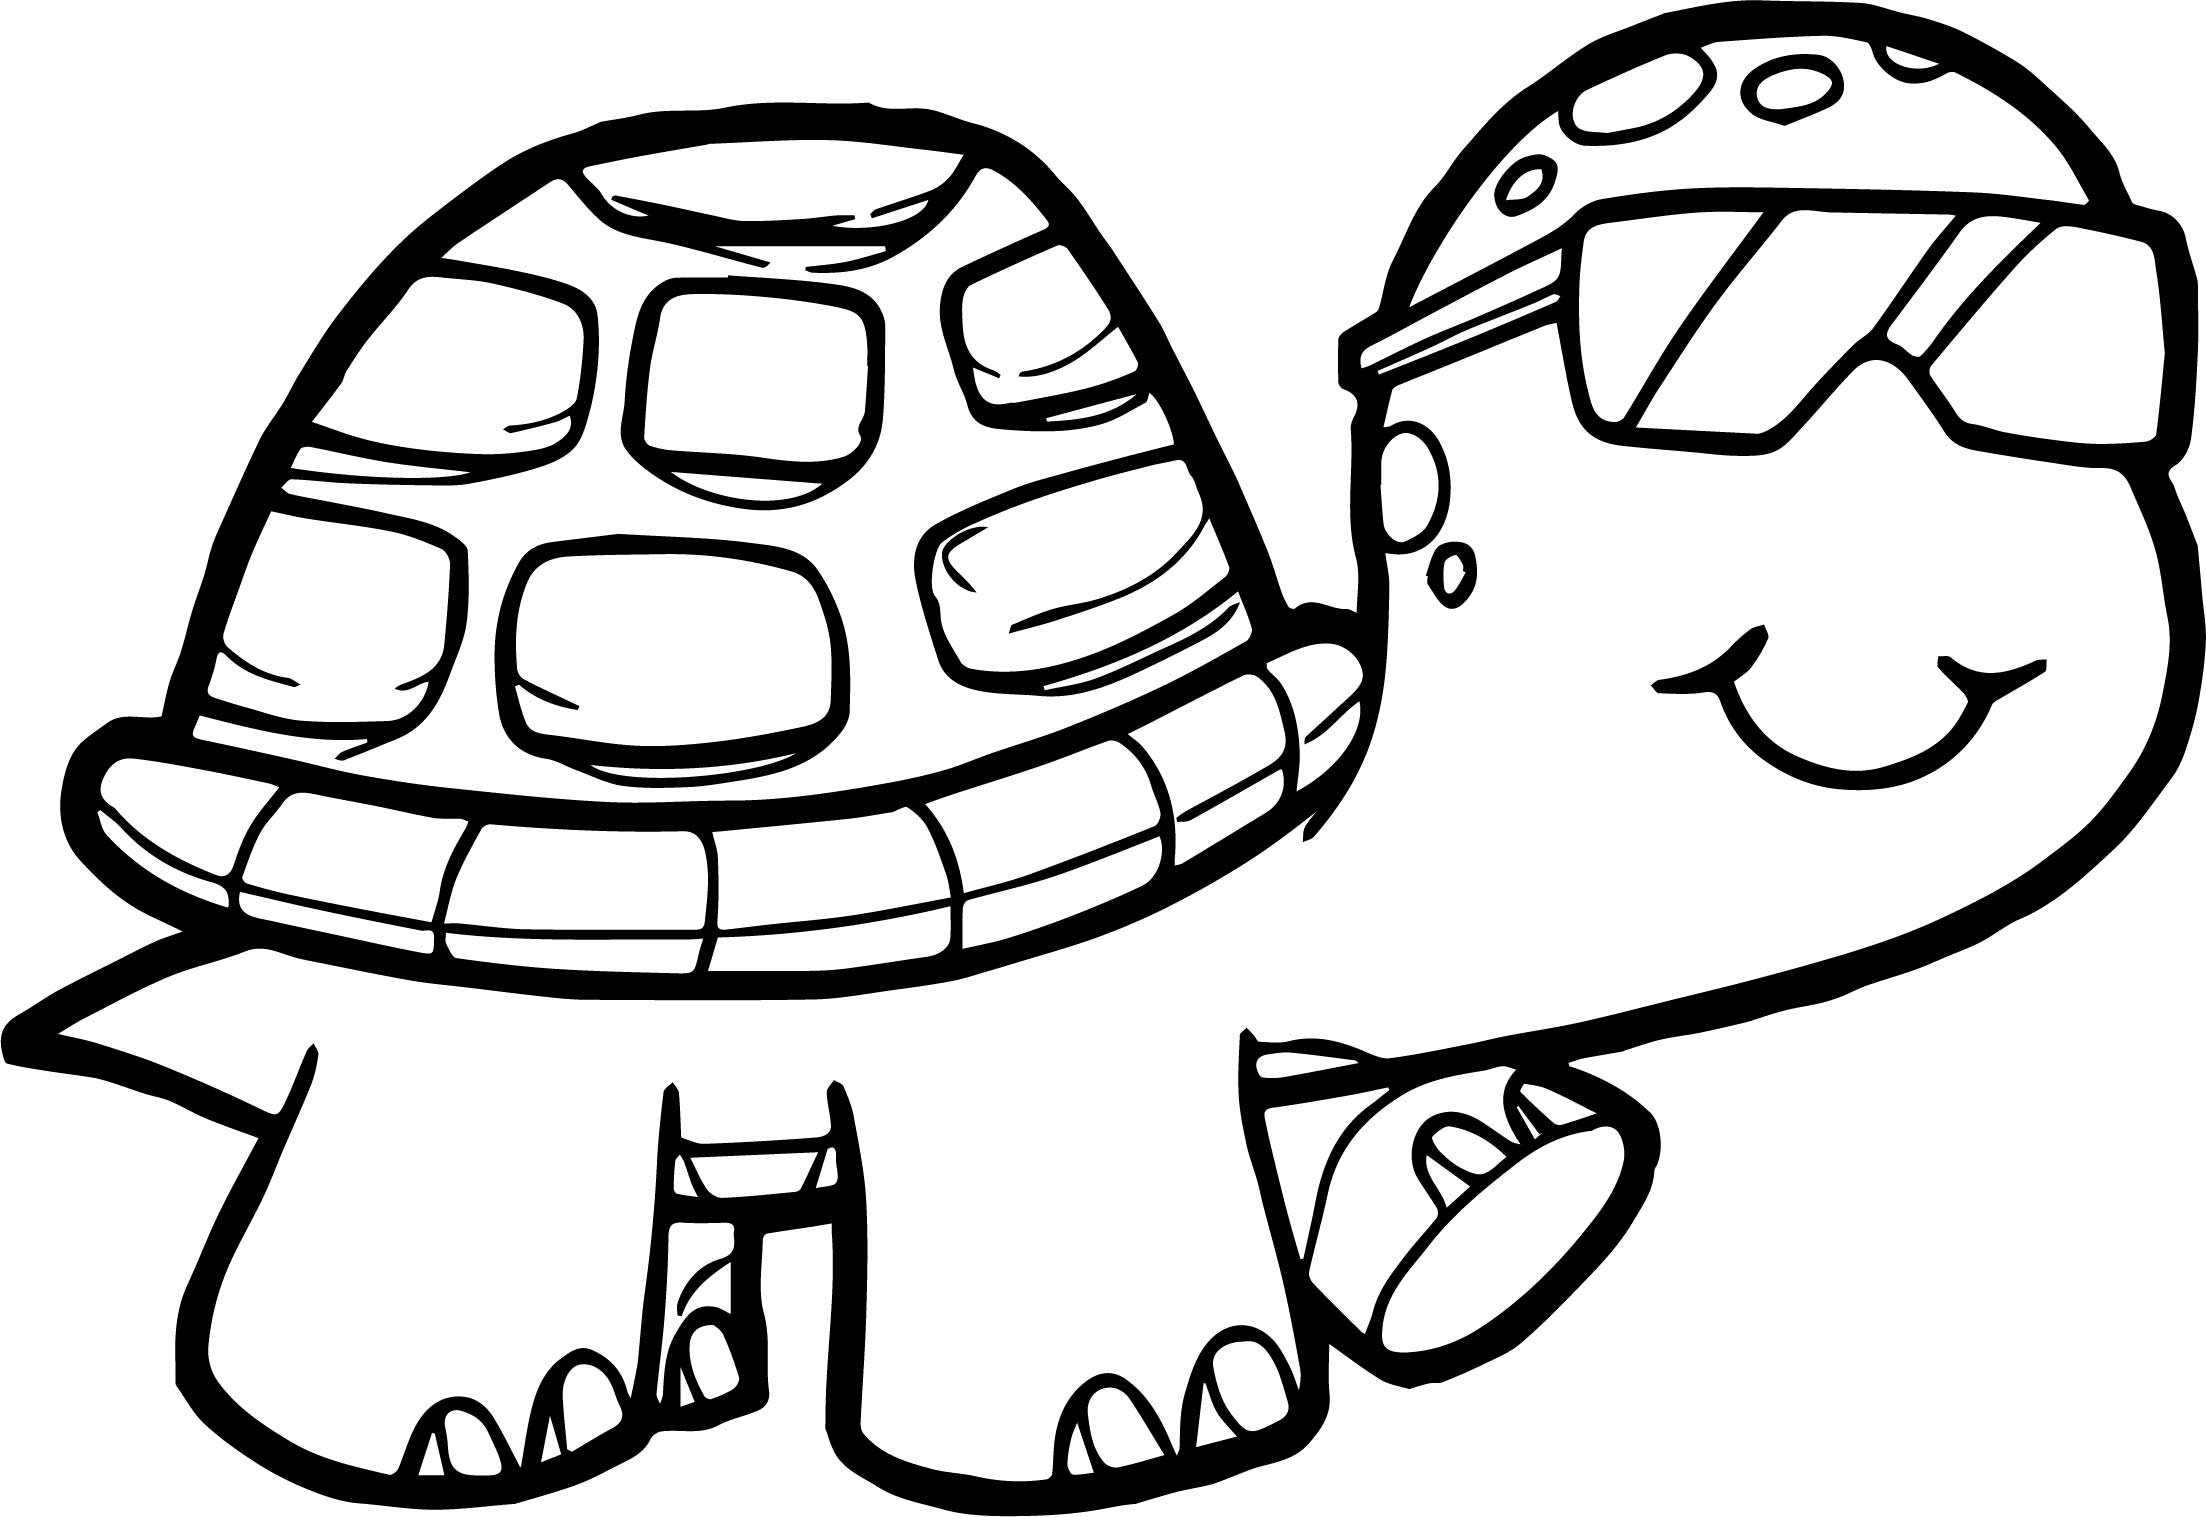 Tortoise Drawing at GetDrawings.com | Free for personal use Tortoise ...